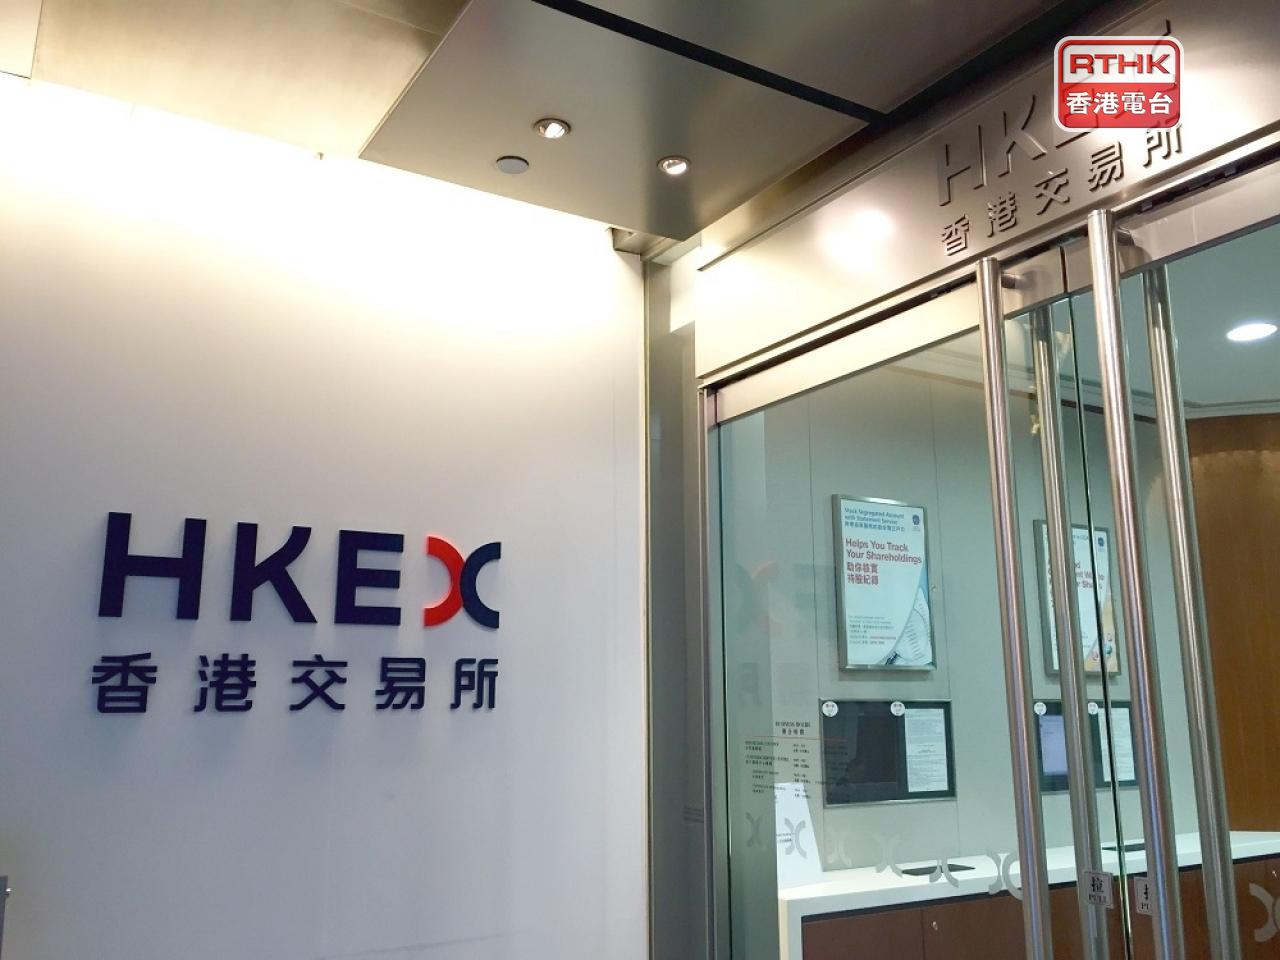 Investors are awaiting an advisory from President Biden about doing business in Hong Kong. Photo: RTHK